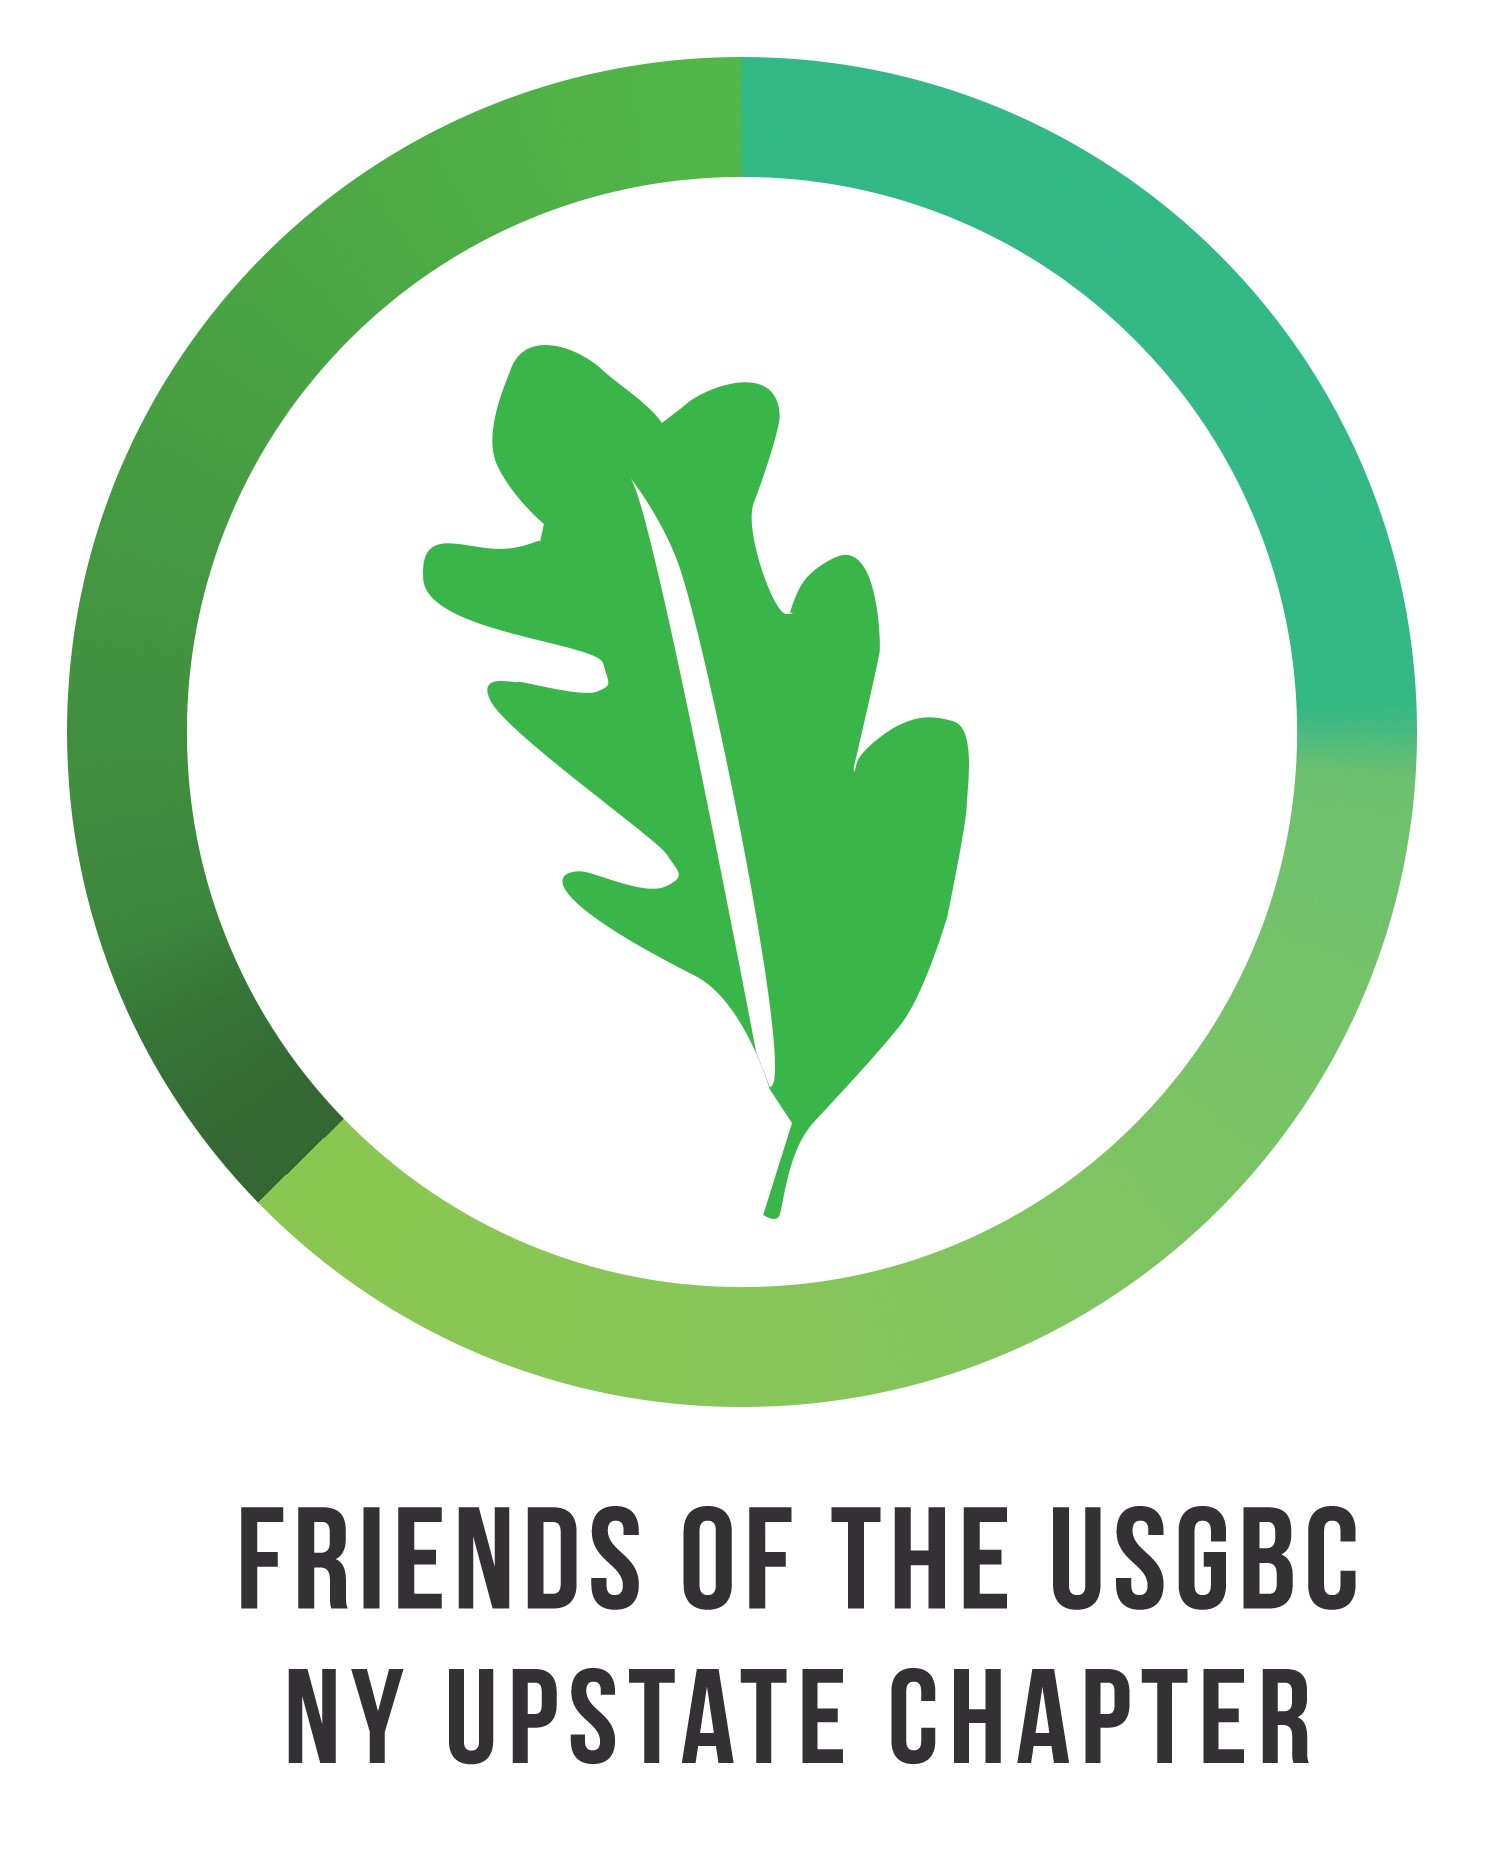 Friends of USGBC NY Upstate Gala logo